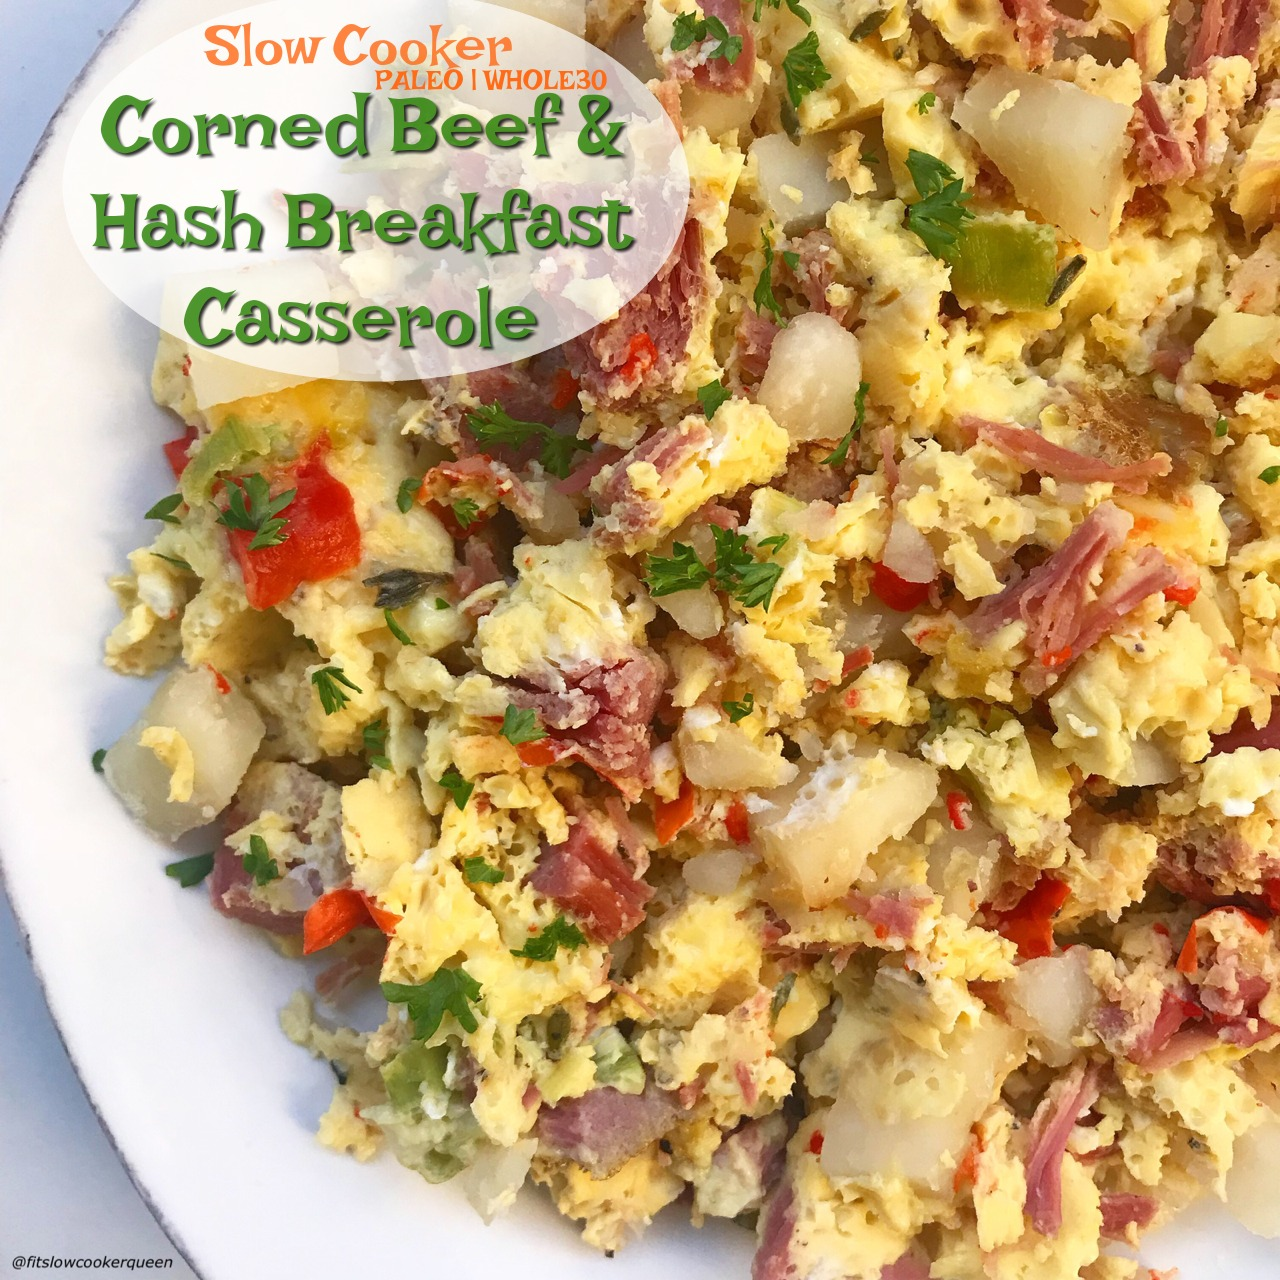 Slow Cooker Corned Beef Hash Breakfast Casserole Paleo Whole30 Fit Slow Cooker Queen